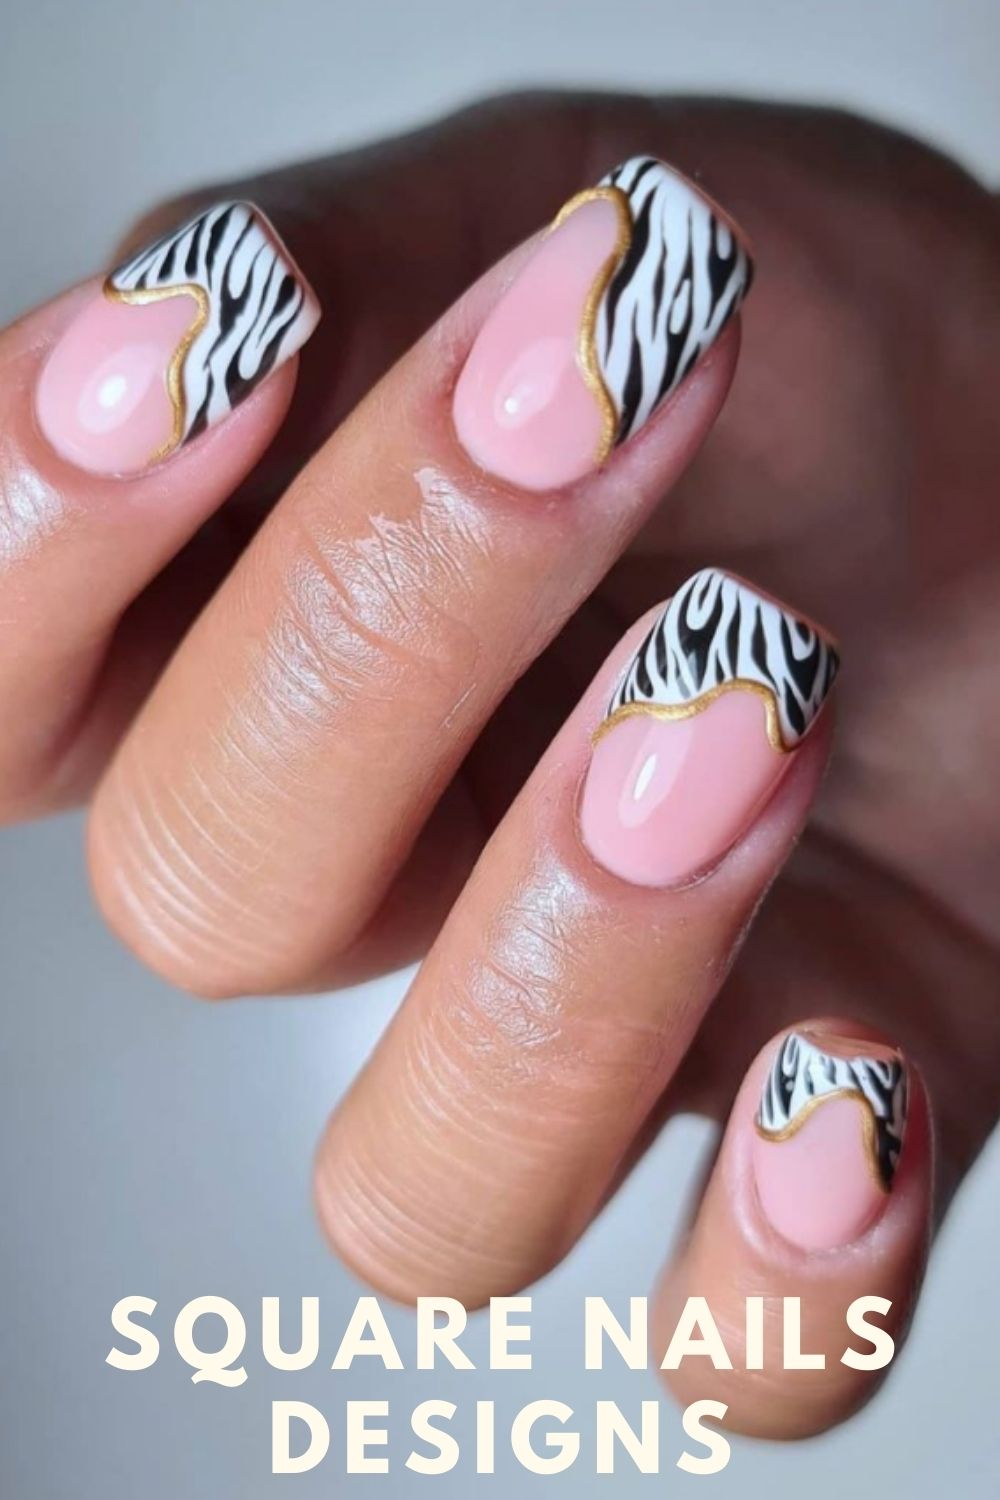 Hot pink and white ombre nails